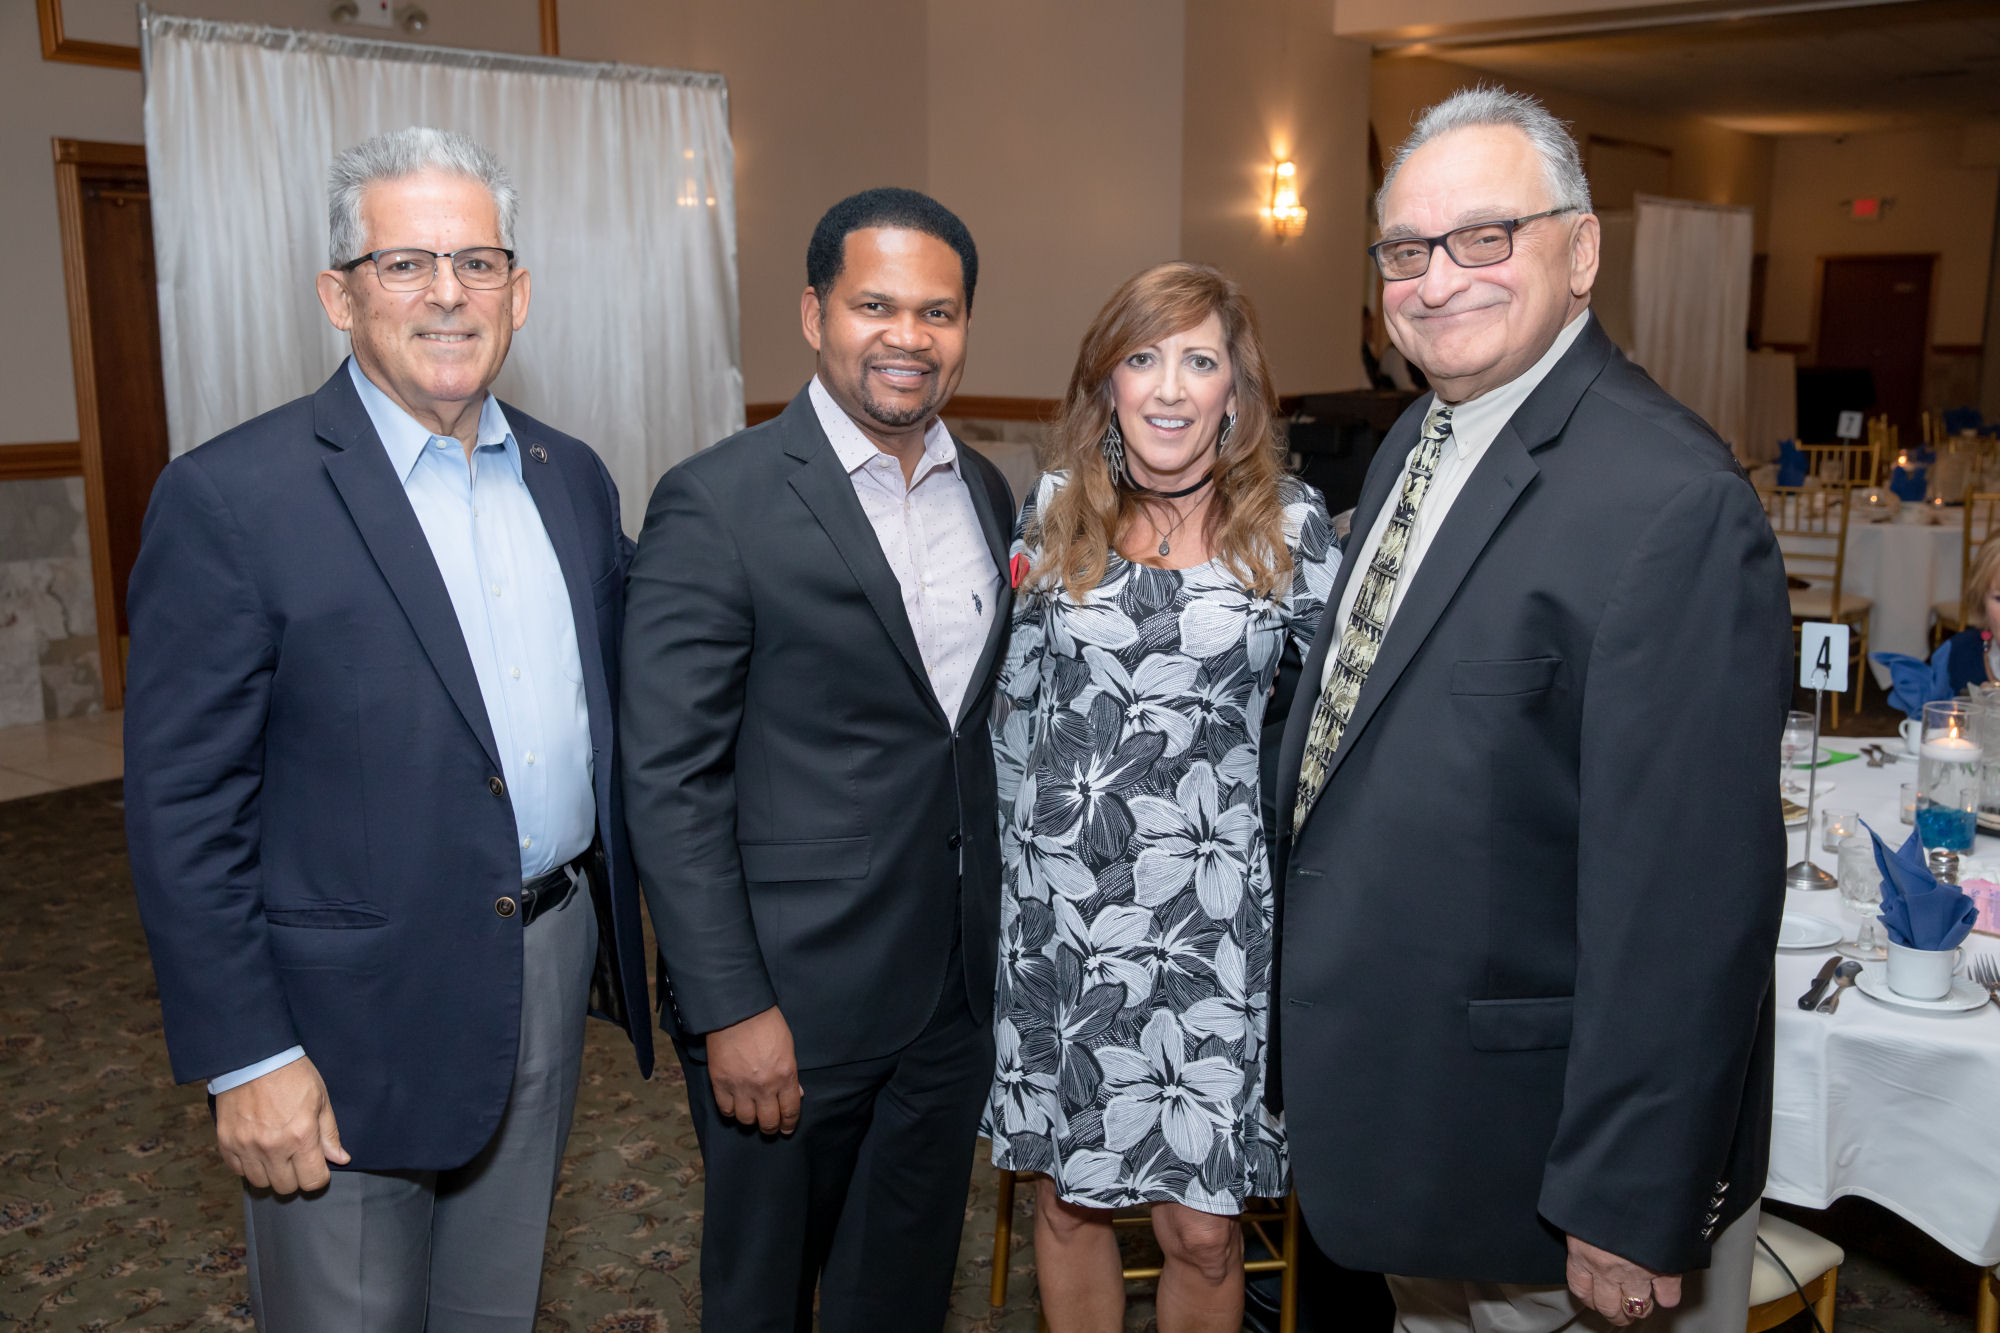 2019 Aurora-John Vranas, Mayor Richard Irvin, Aurora, Illinois, Honoree Illinois State Senator Linda Panagopoulos Holmes, Dr. James Patras